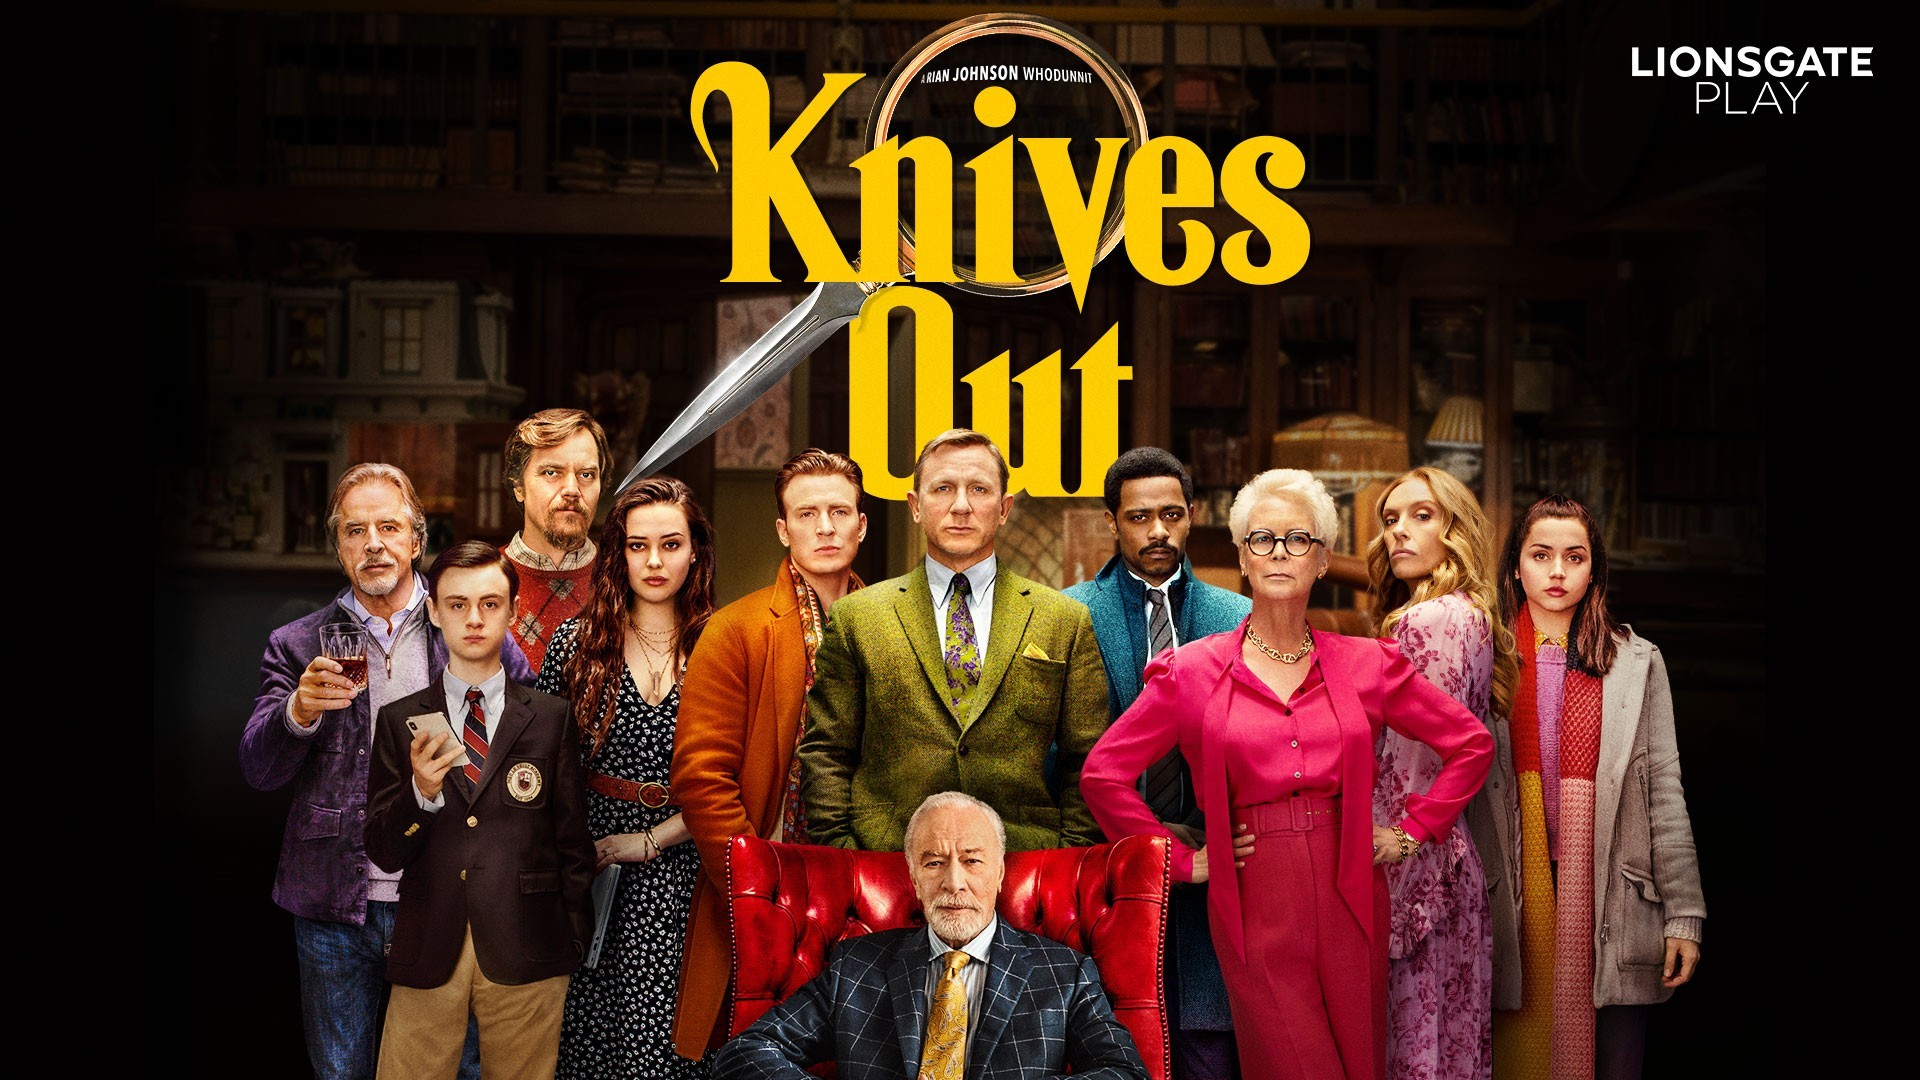 Watch Knives Out online | Stream full HD movies on Airtel Xstream (Airtel TV)